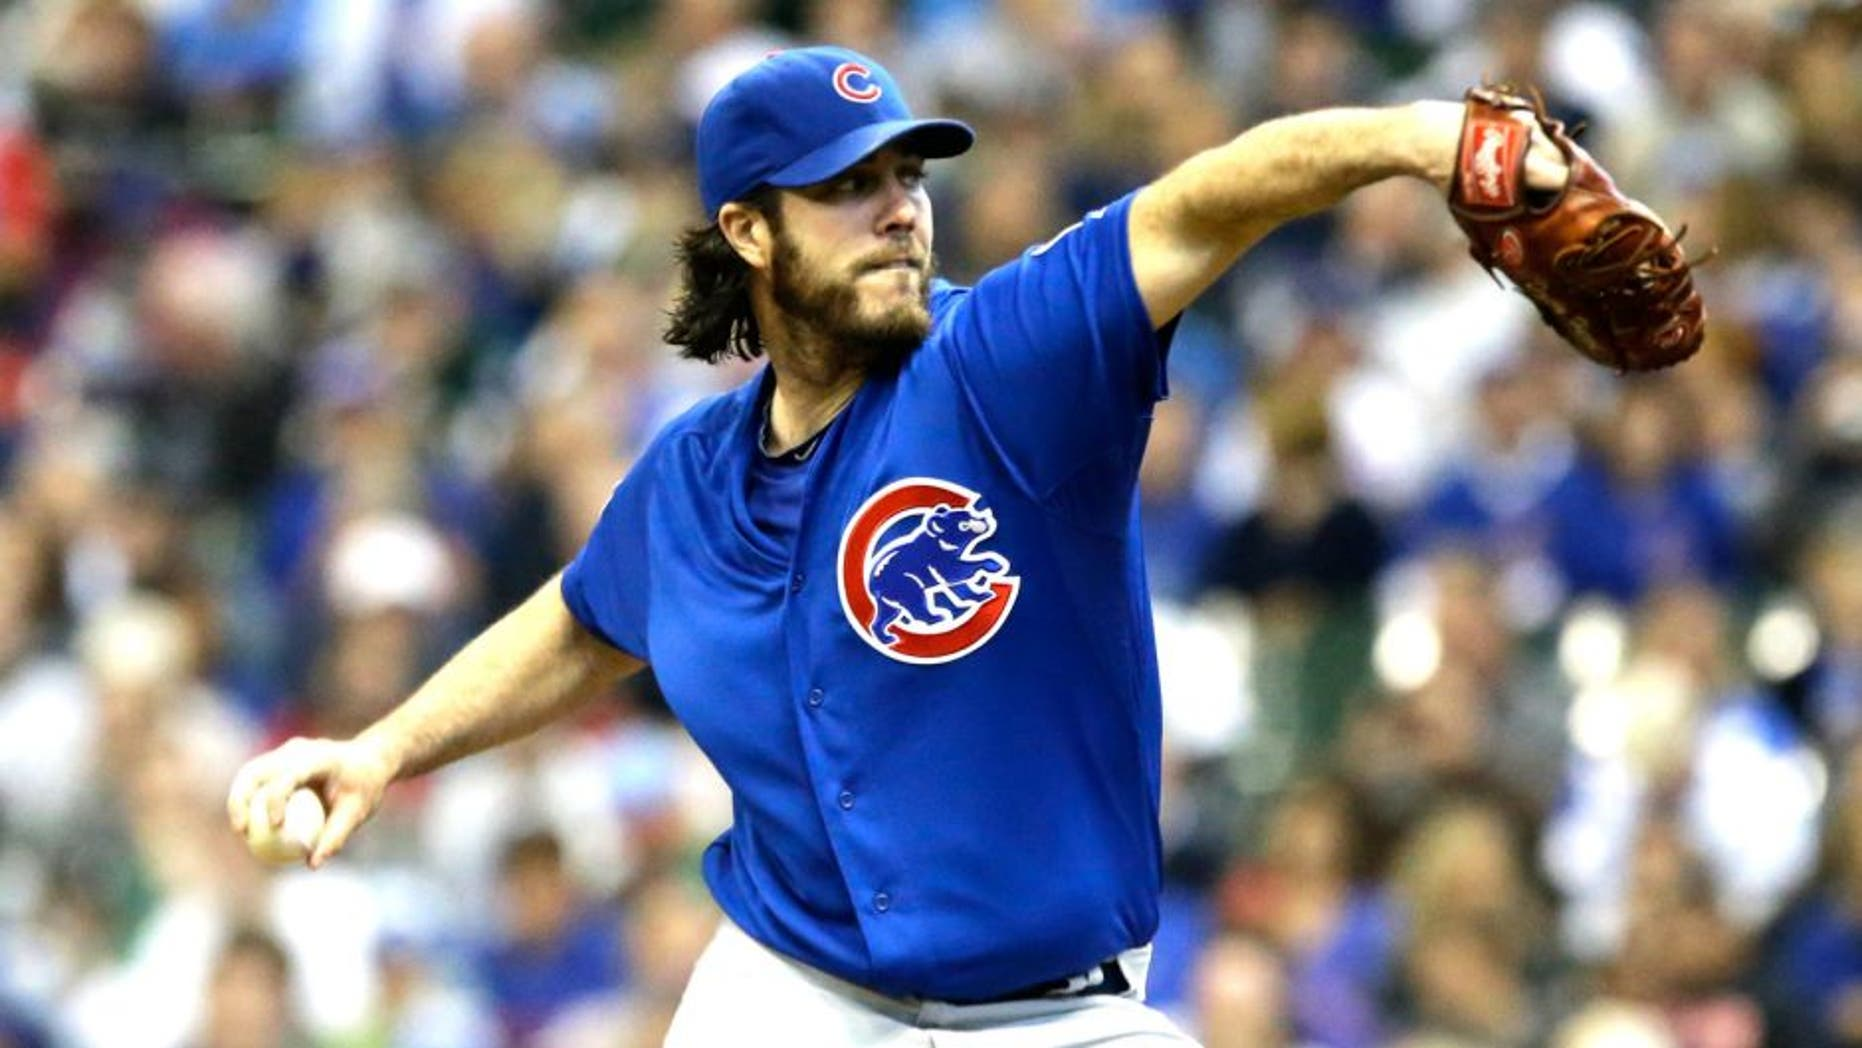 MILWAUKEE, WI - OCTOBER 4: Dan Haren #50 of the Chicago Cubs throws to the Milwaukee Brewers in the first inning of a baseball game at Miller Park on October 4, 2015 in Milwaukee, Wisconsin. (Photo by Jeffrey Phelps/Getty Images)